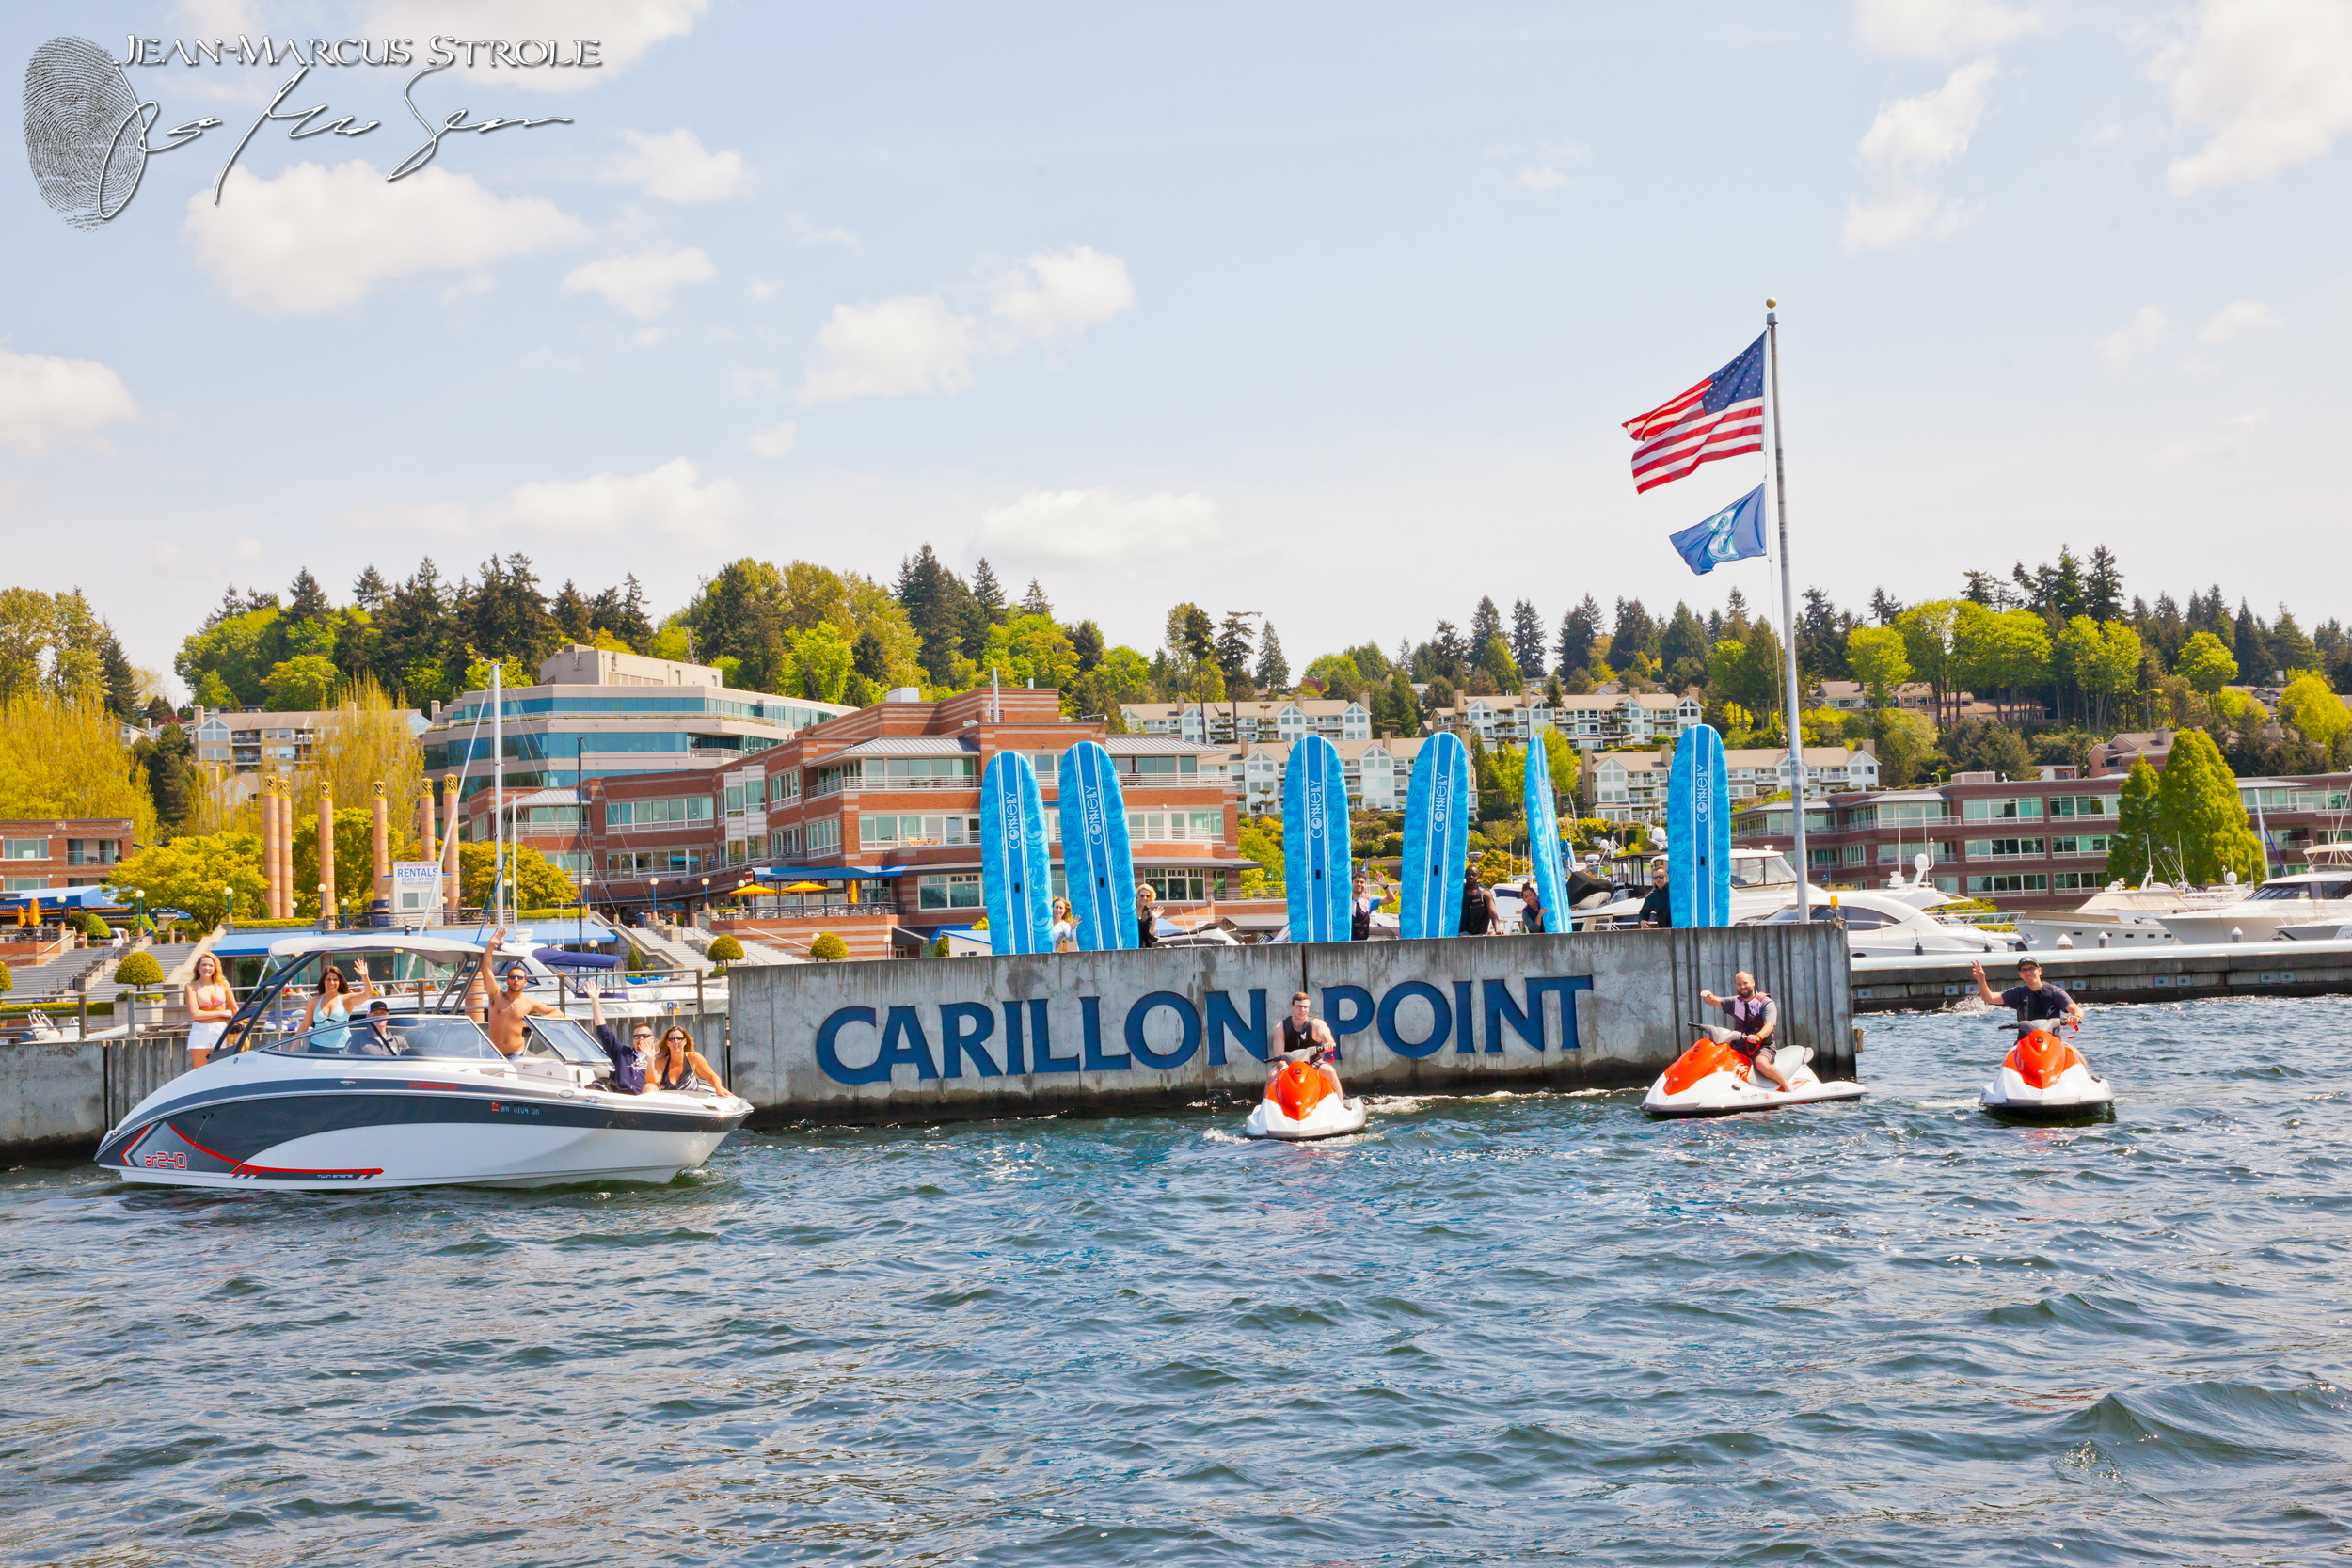 Carillon_Point_Waterfront_Adventures-Jean-Marcus_Strole_Photography-60.jpg